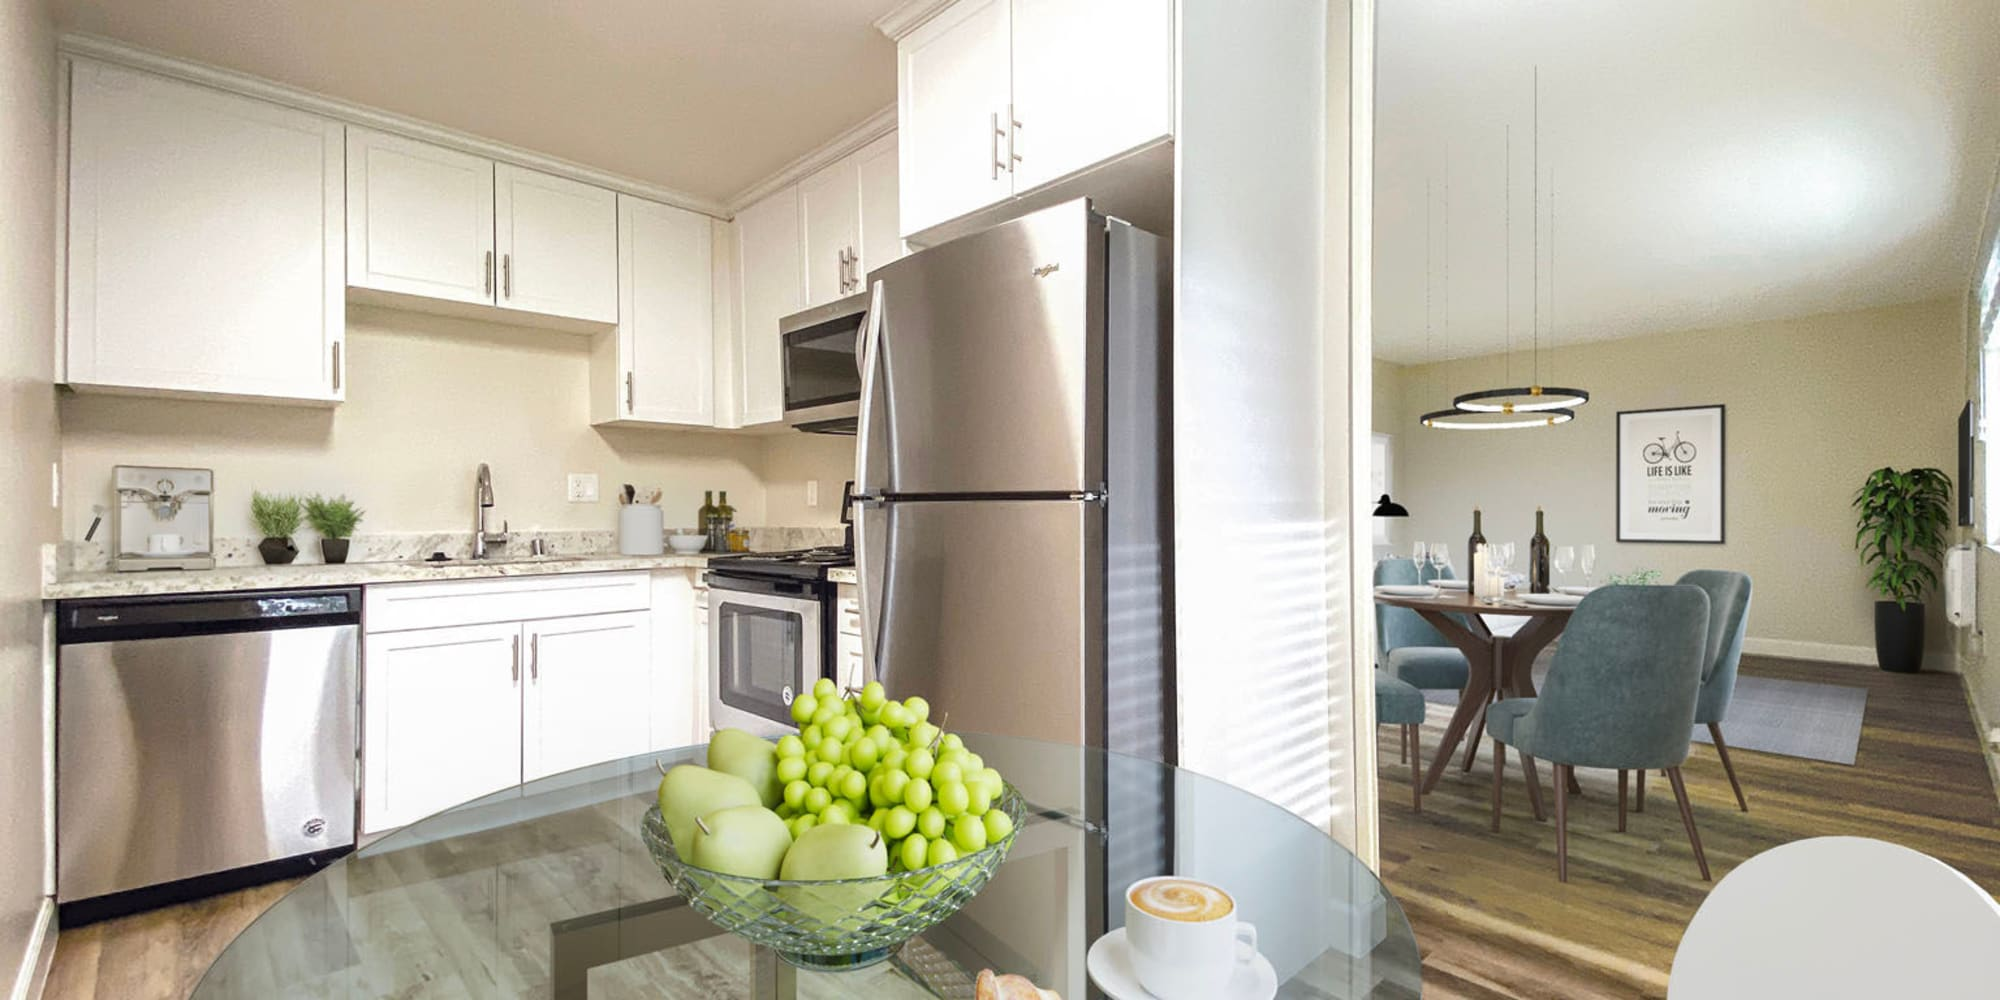 Model home's open-concept kitchen with hardwood flooring and stainless-steel appliances at Pleasanton Heights in Pleasanton, California